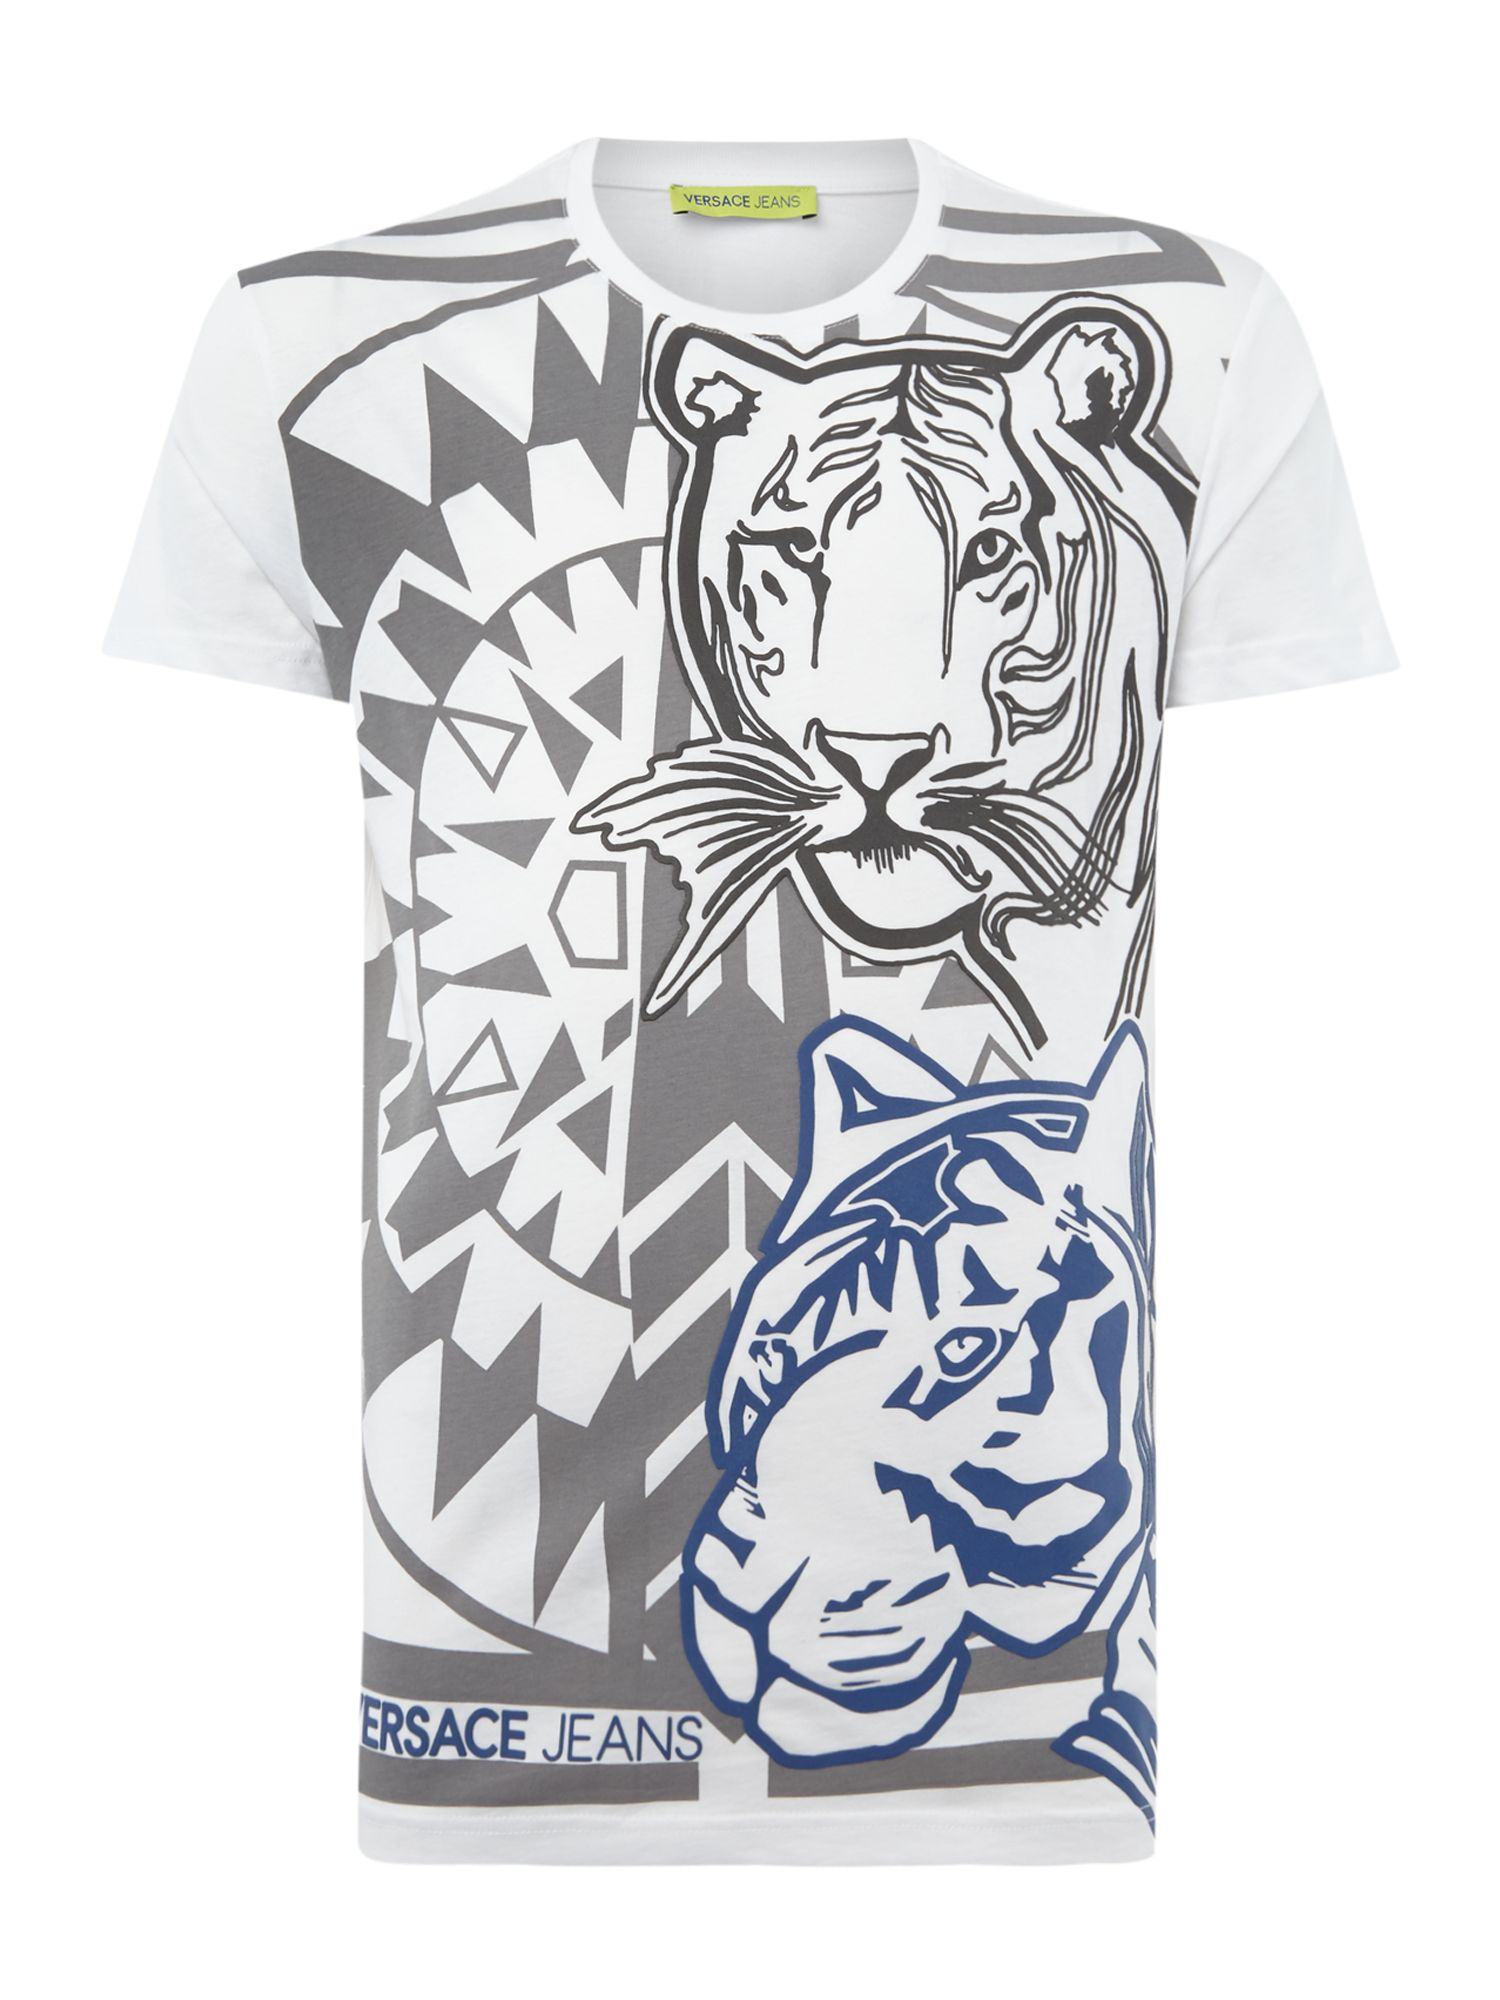 Men's Versace Jeans All Over Tiger Print Crew Neck T-Shirt, White